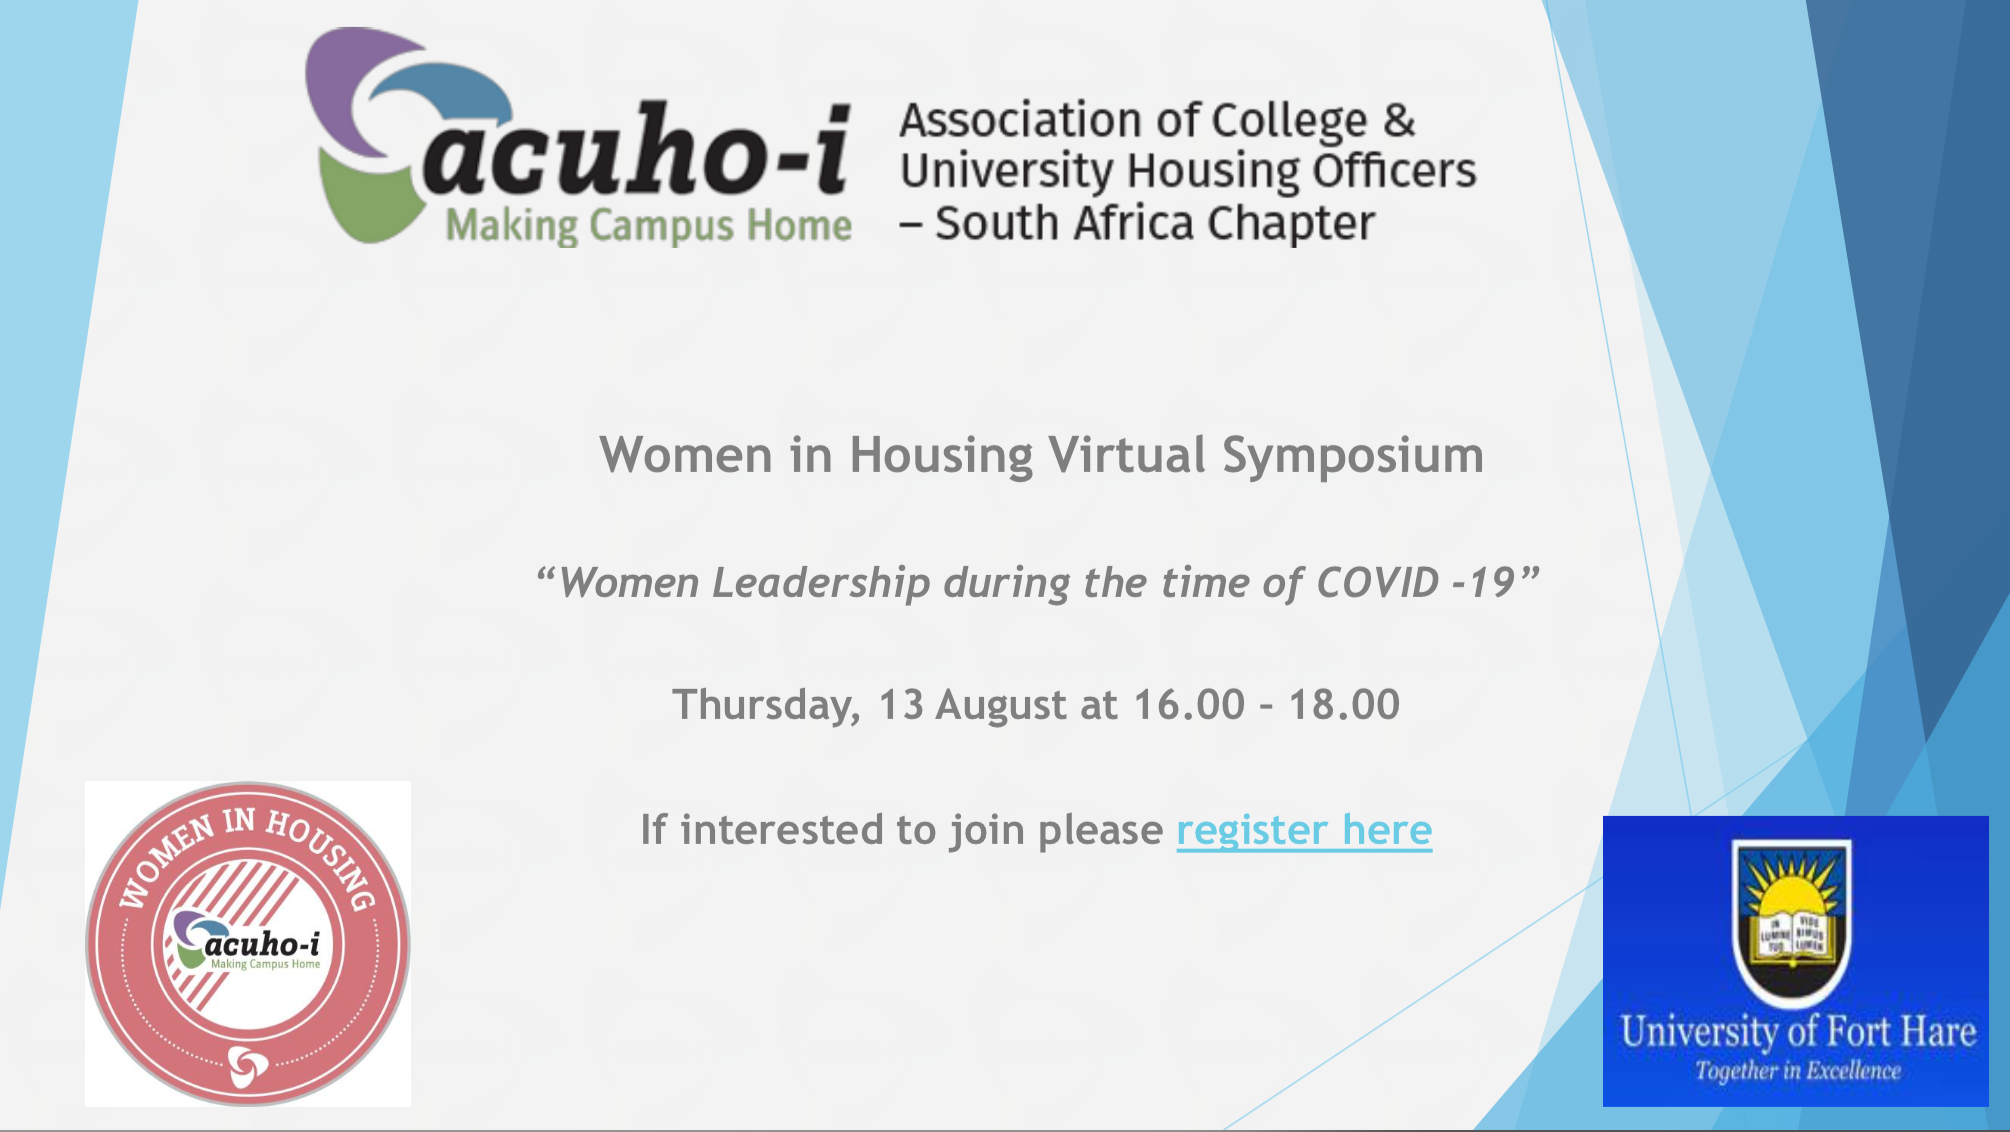 Register Here for Women in Housing Virtual Symposium